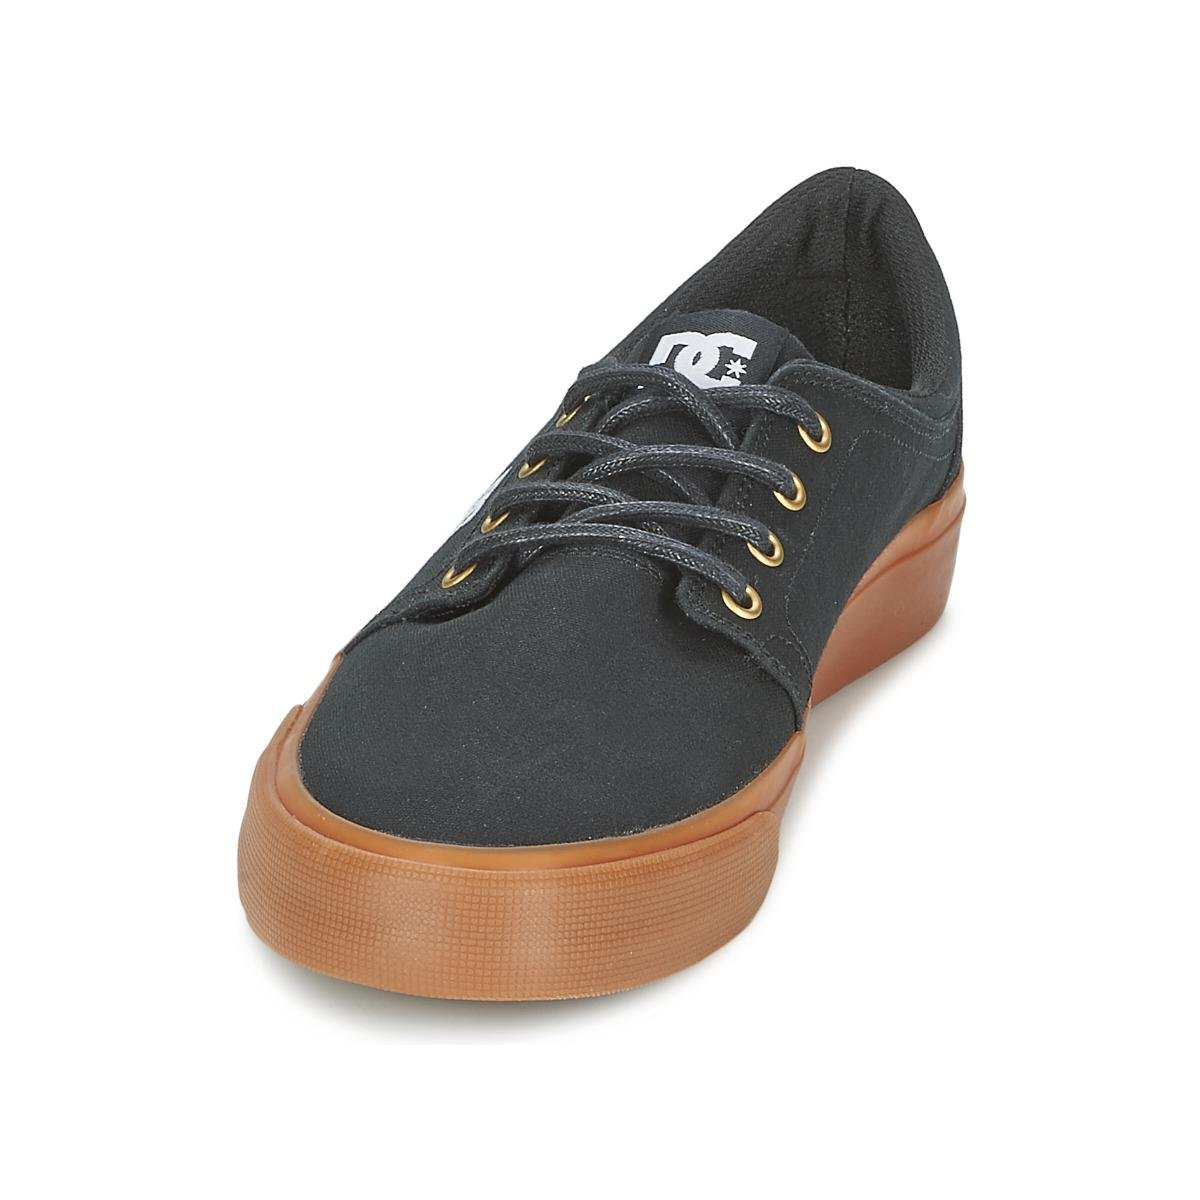 DC Shoes Trase Tx Shoes (trainers) in Black for Men